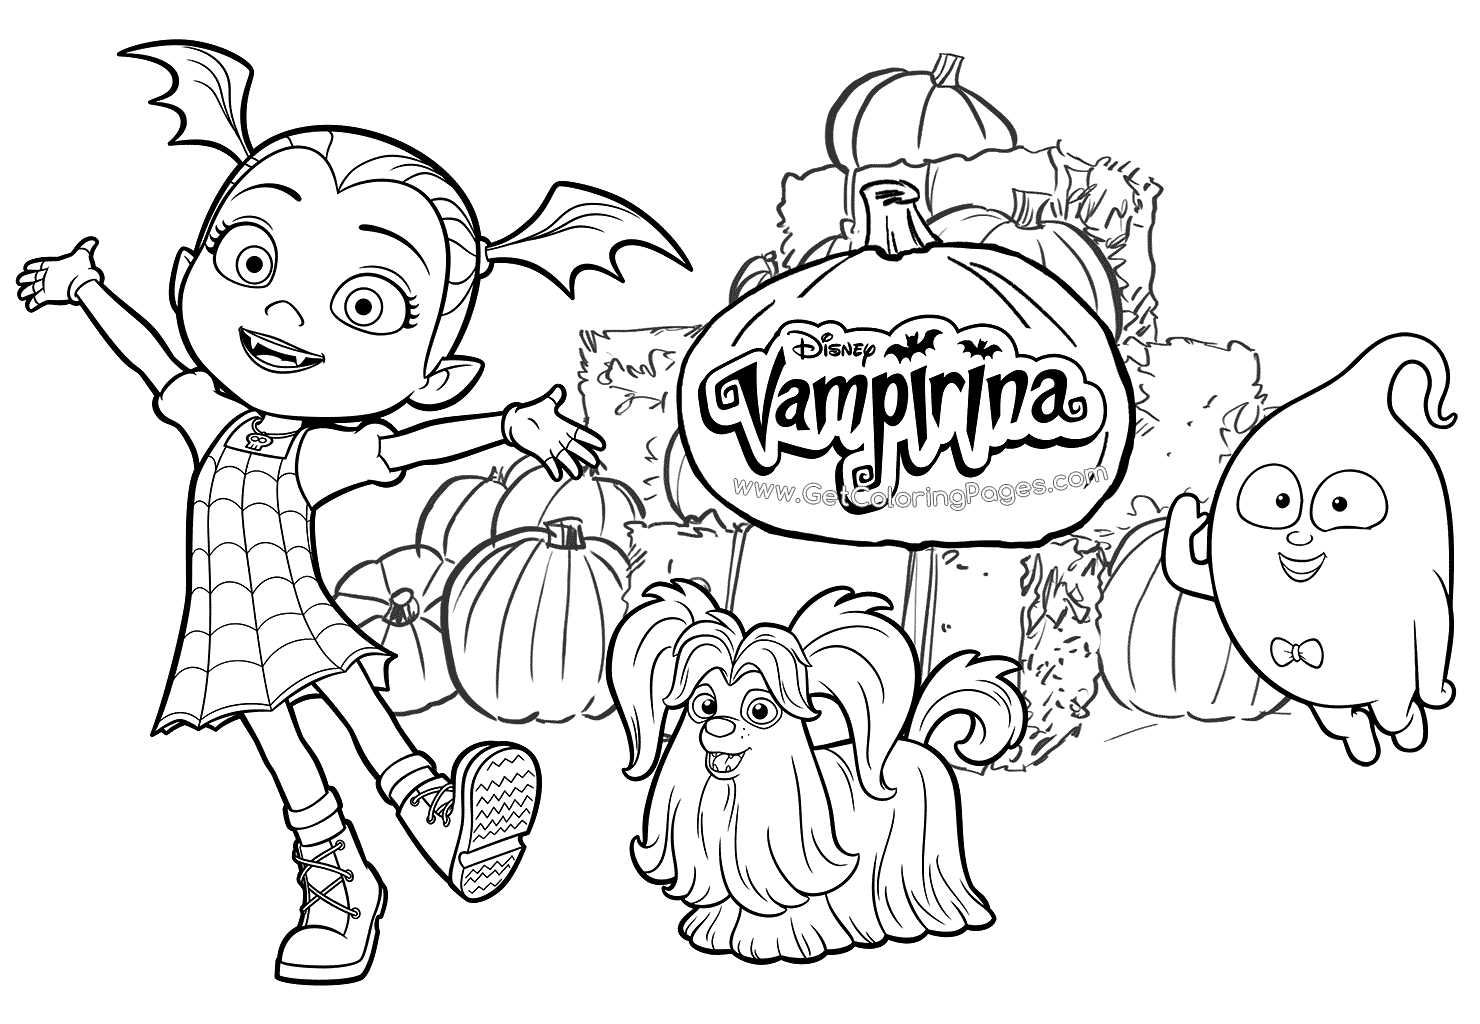 free printable vampirina coloring pages vampirina and friends popular easy coloring pages on log printable vampirina free coloring pages